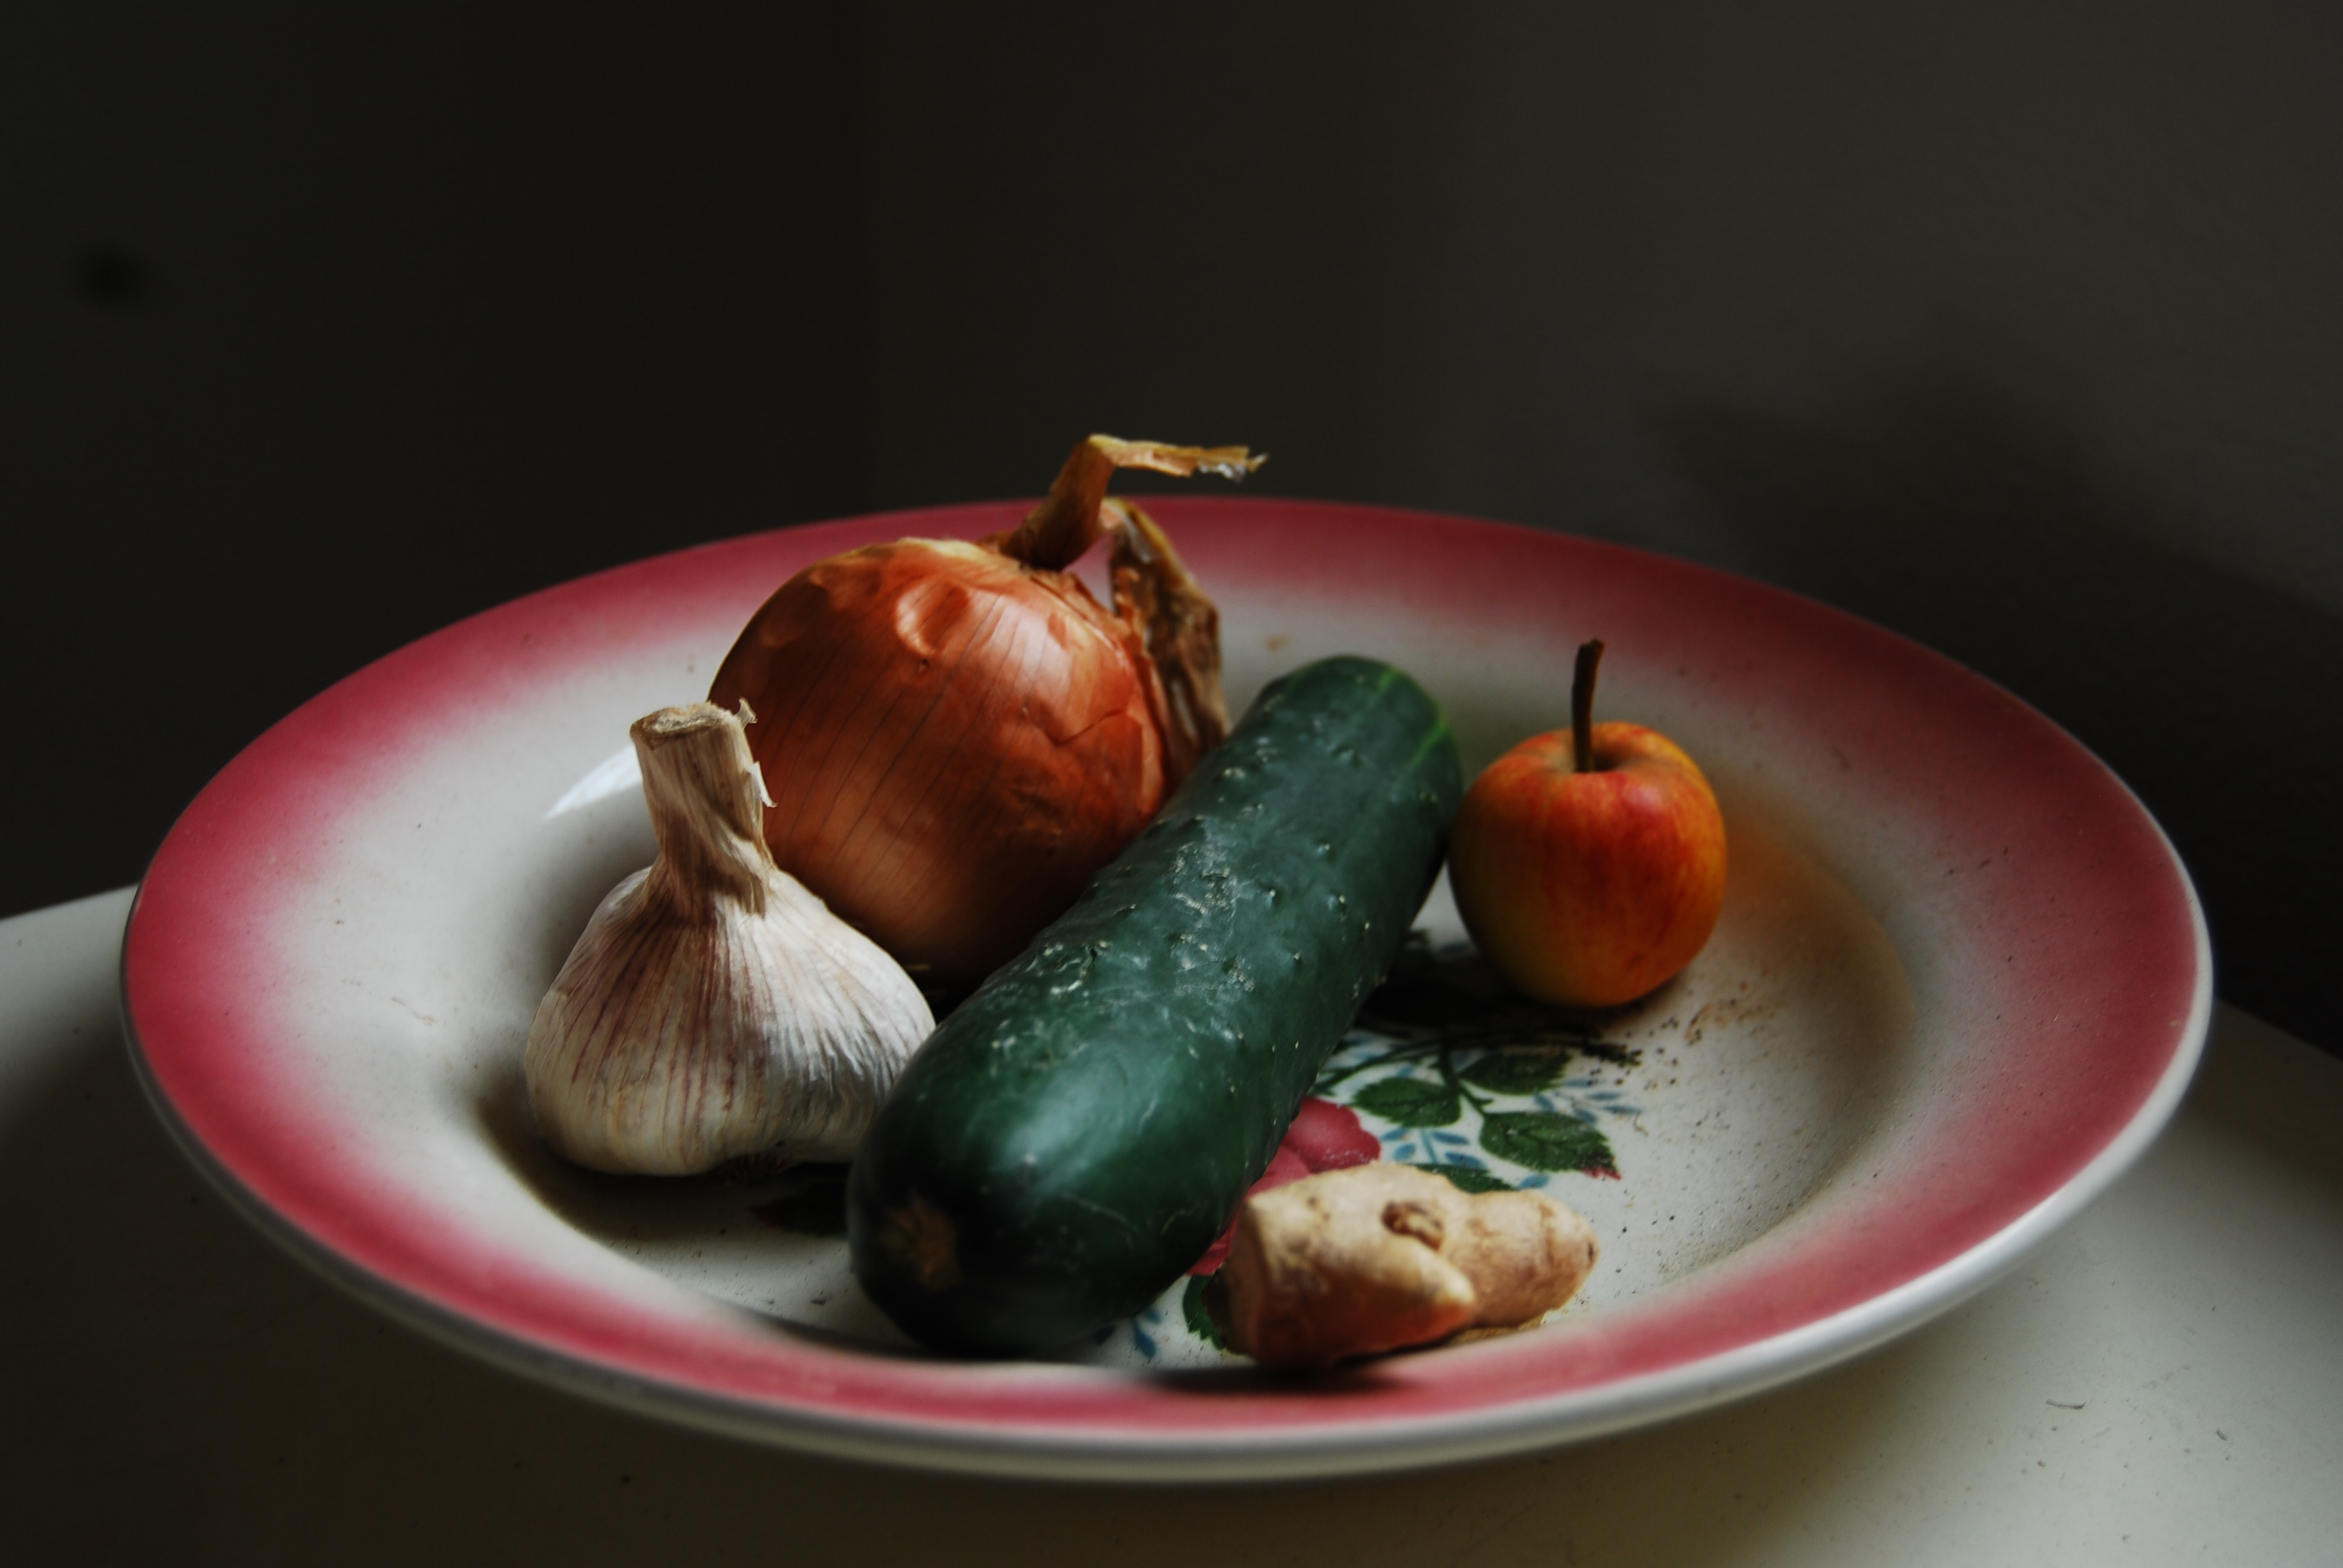 onion, garlic, ginger, and green vegetable on round white and red plate